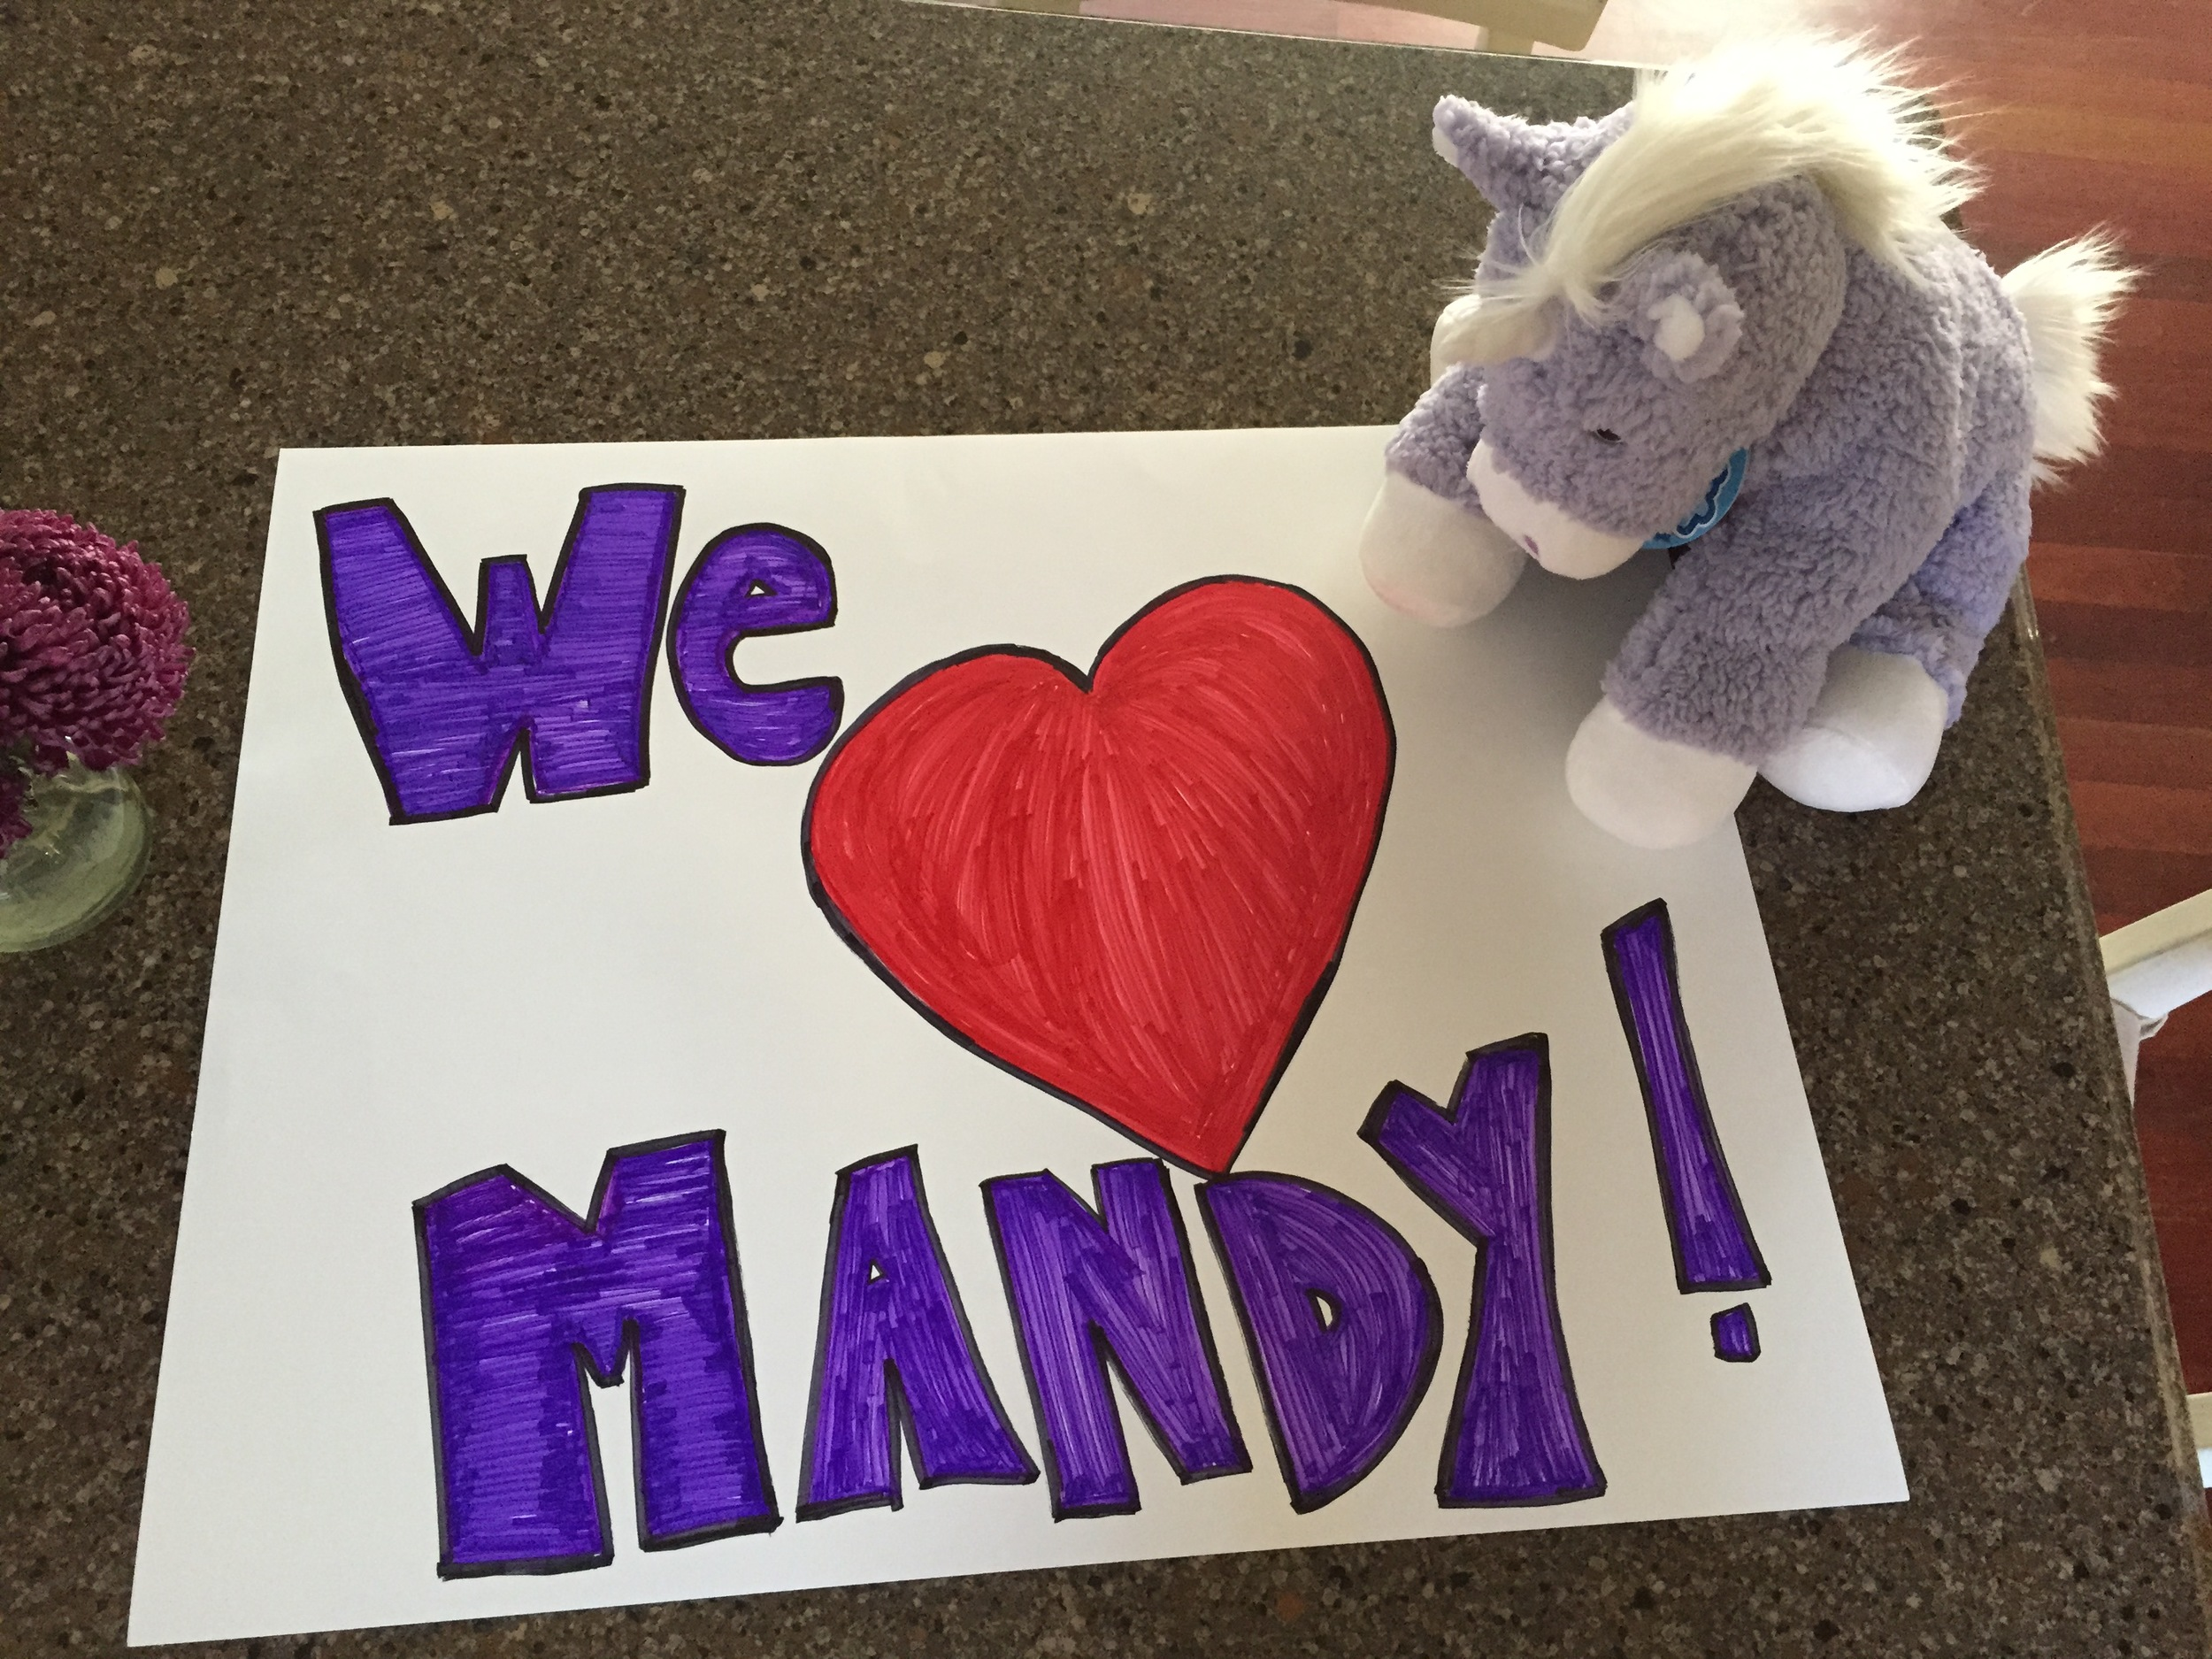 We brought a poster board and a super soft stuffed unicorn to the hospice home. Plus, A little birdie told me that Mandy liked hot fudge sundaes so we brought her one for dessert.